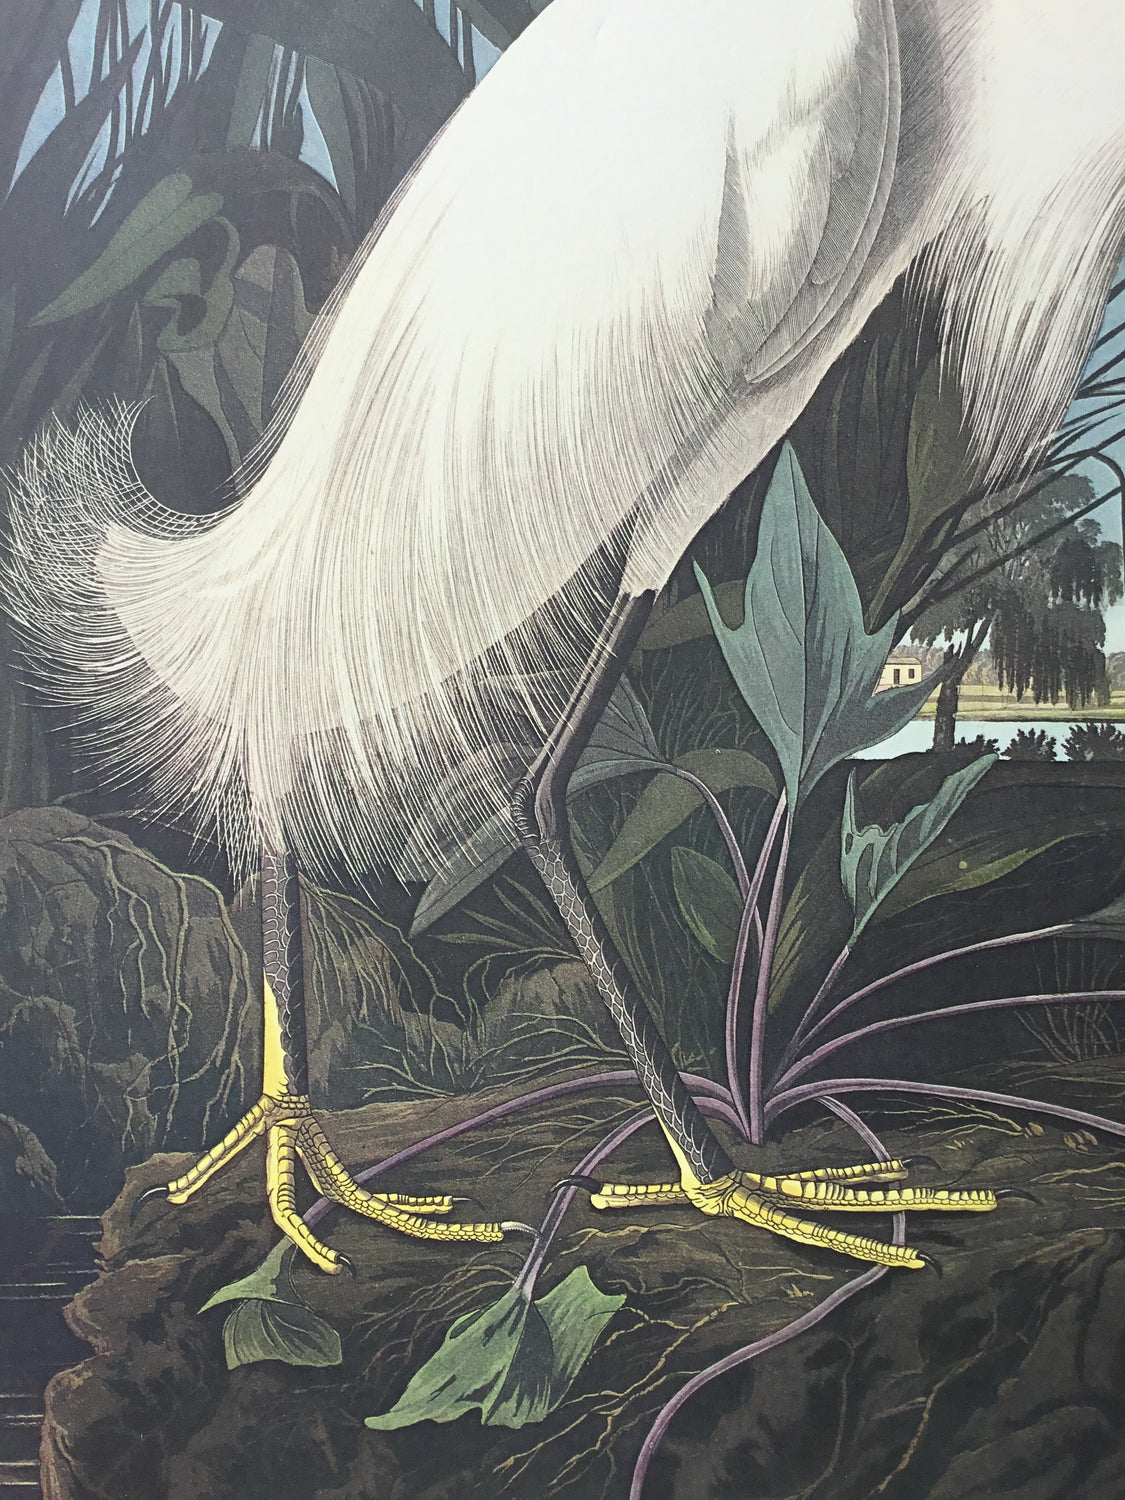 Snowy Egret Audubon Print, plate 242, Princeton Audubon Double Elephant Edition. 26 1/4 x 39 1/4 inches. Charleston S.C. plantation in background. Cameo of Audubon approaching from bottom right.